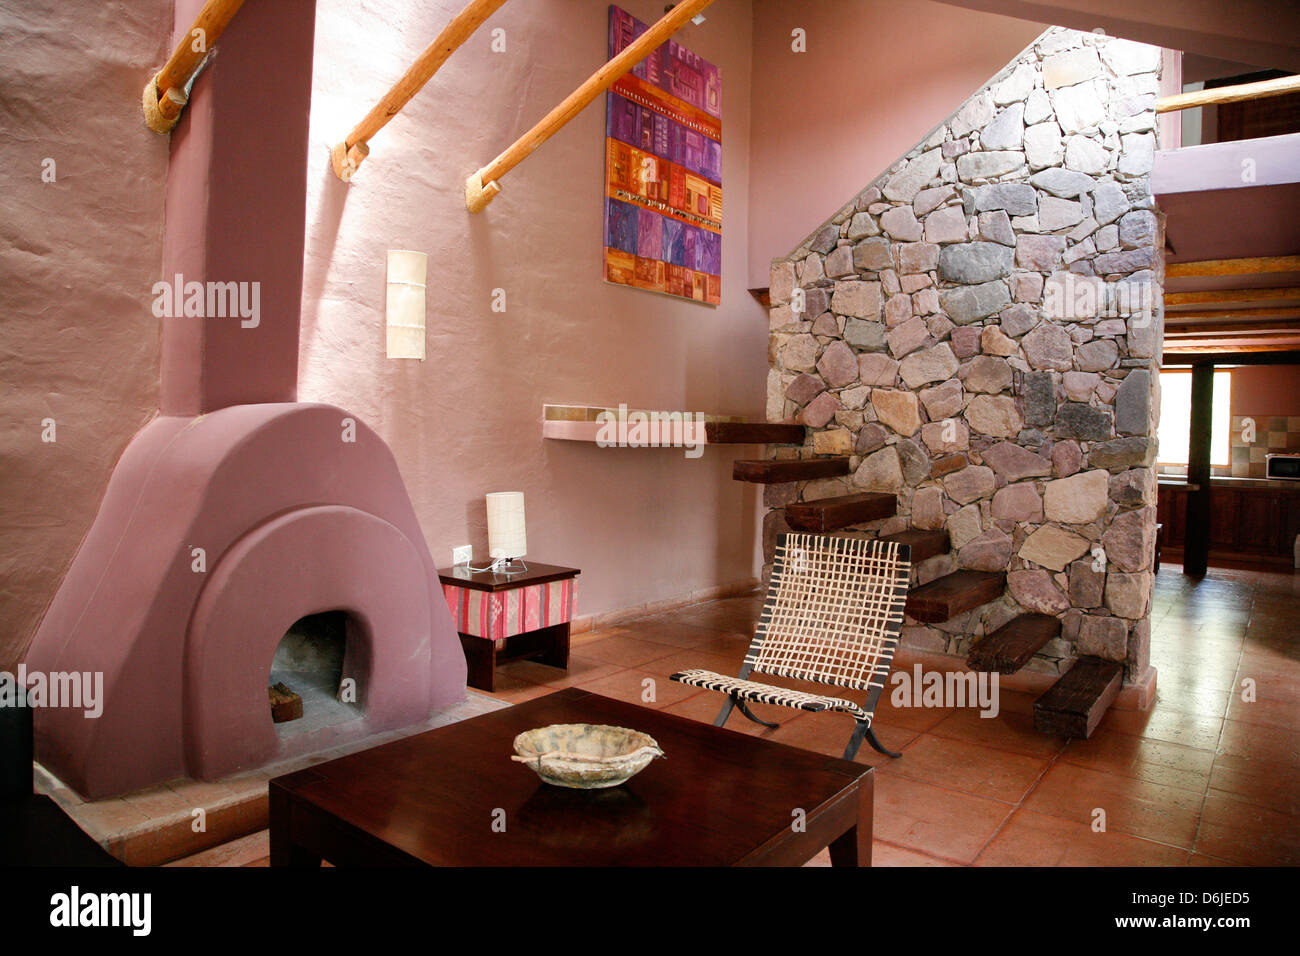 The luxurious La Comarca Hotel in Purmamarca, Jujuy Province, Argentina, South America - Stock Image